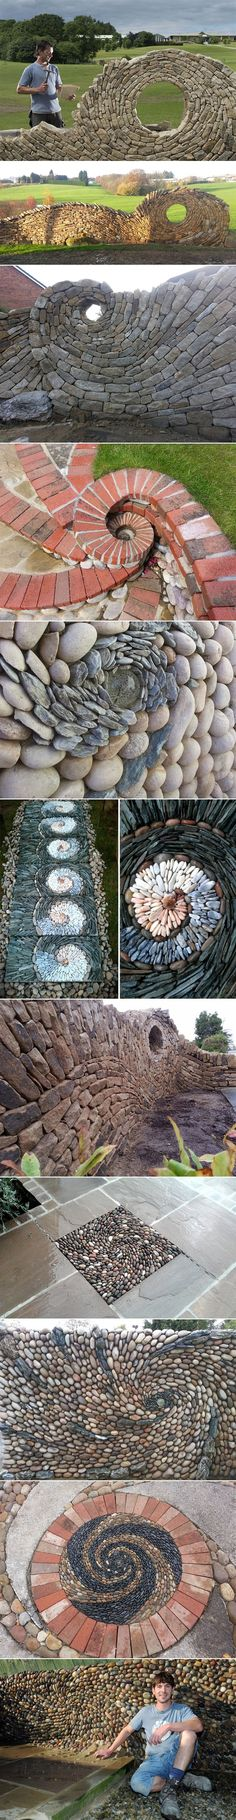 I don't know when I will ever have enough rocks to make a wall, but it would certainly be doable to do a spiral in he space between pavers as in one of the pictures. I could use rocks from the landscaping around the house.